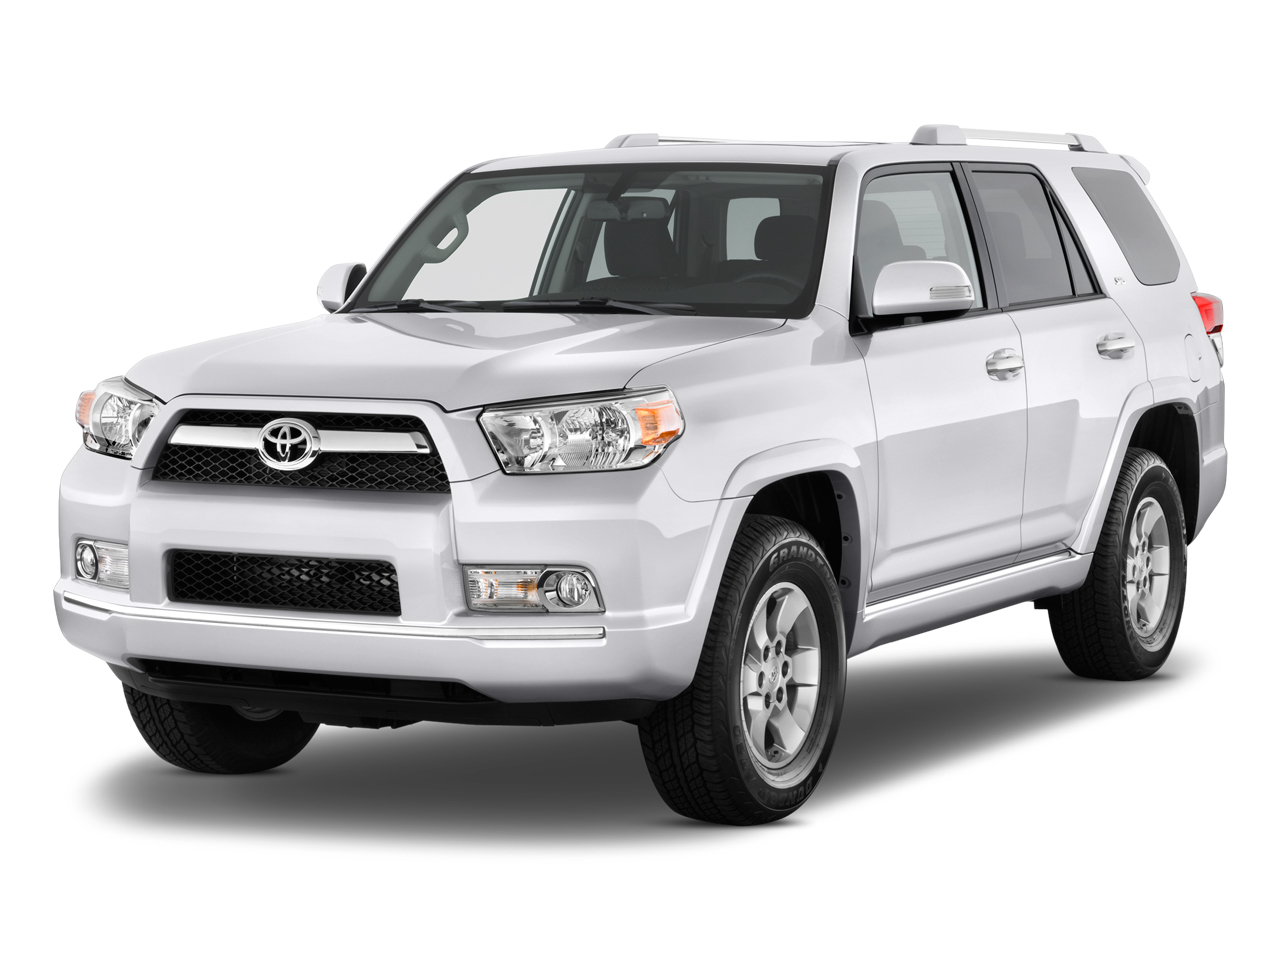 2010 Toyota 4Runner Review, Ratings, Specs, Prices, and